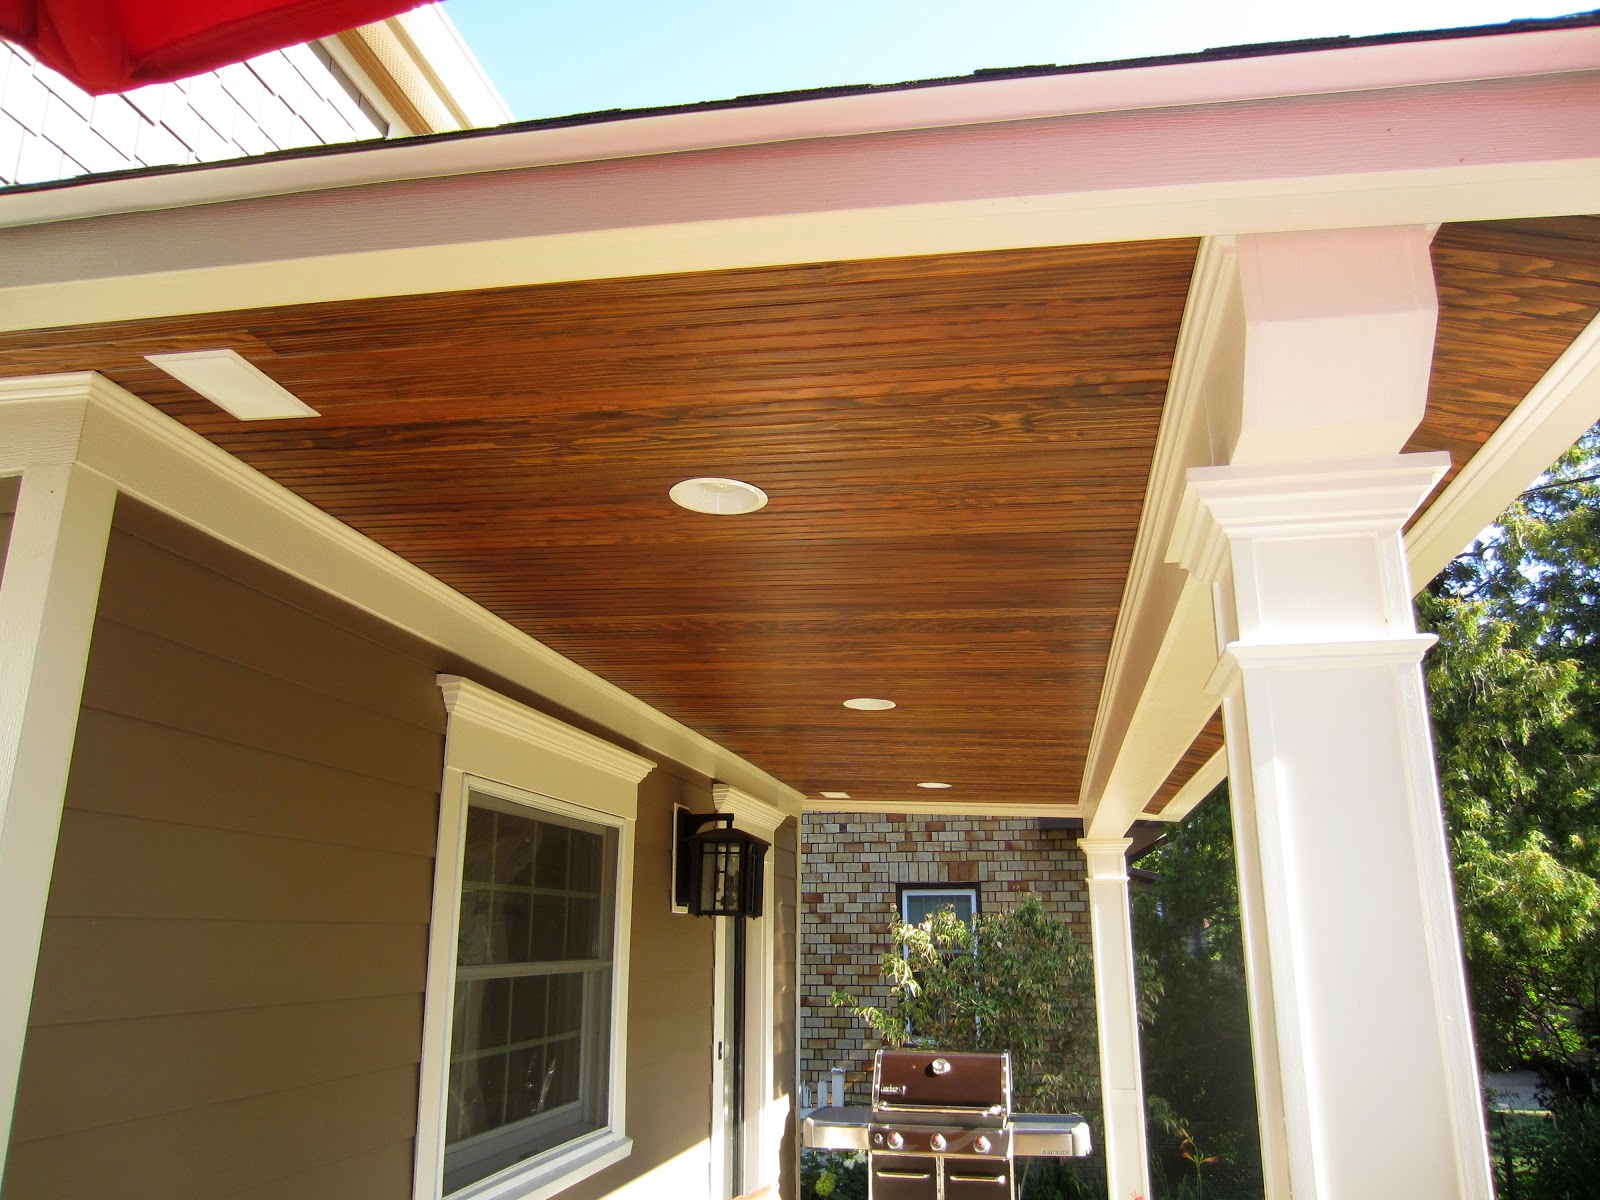 The Pillars Are 100% Versatex PVC Trim And Will Never Rot And Rarely Need  Painting. They Compliment The Vintage Douglas Fir Tongue And Groove Porch  Ceiling ...